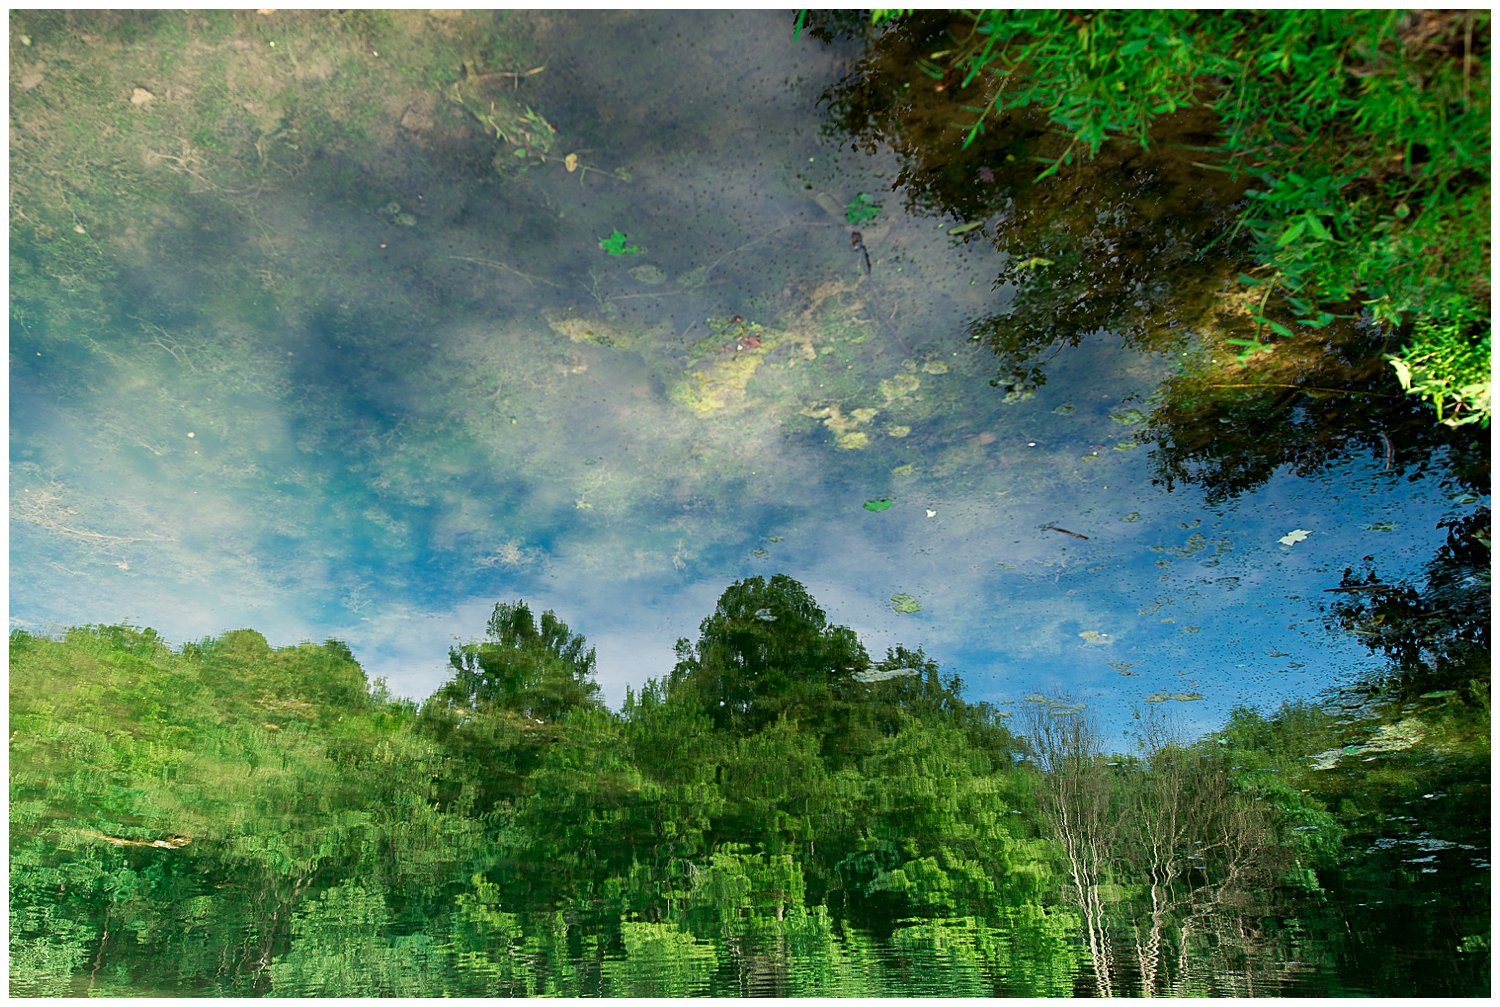 reflection of water and trees at Twin Lakes Park